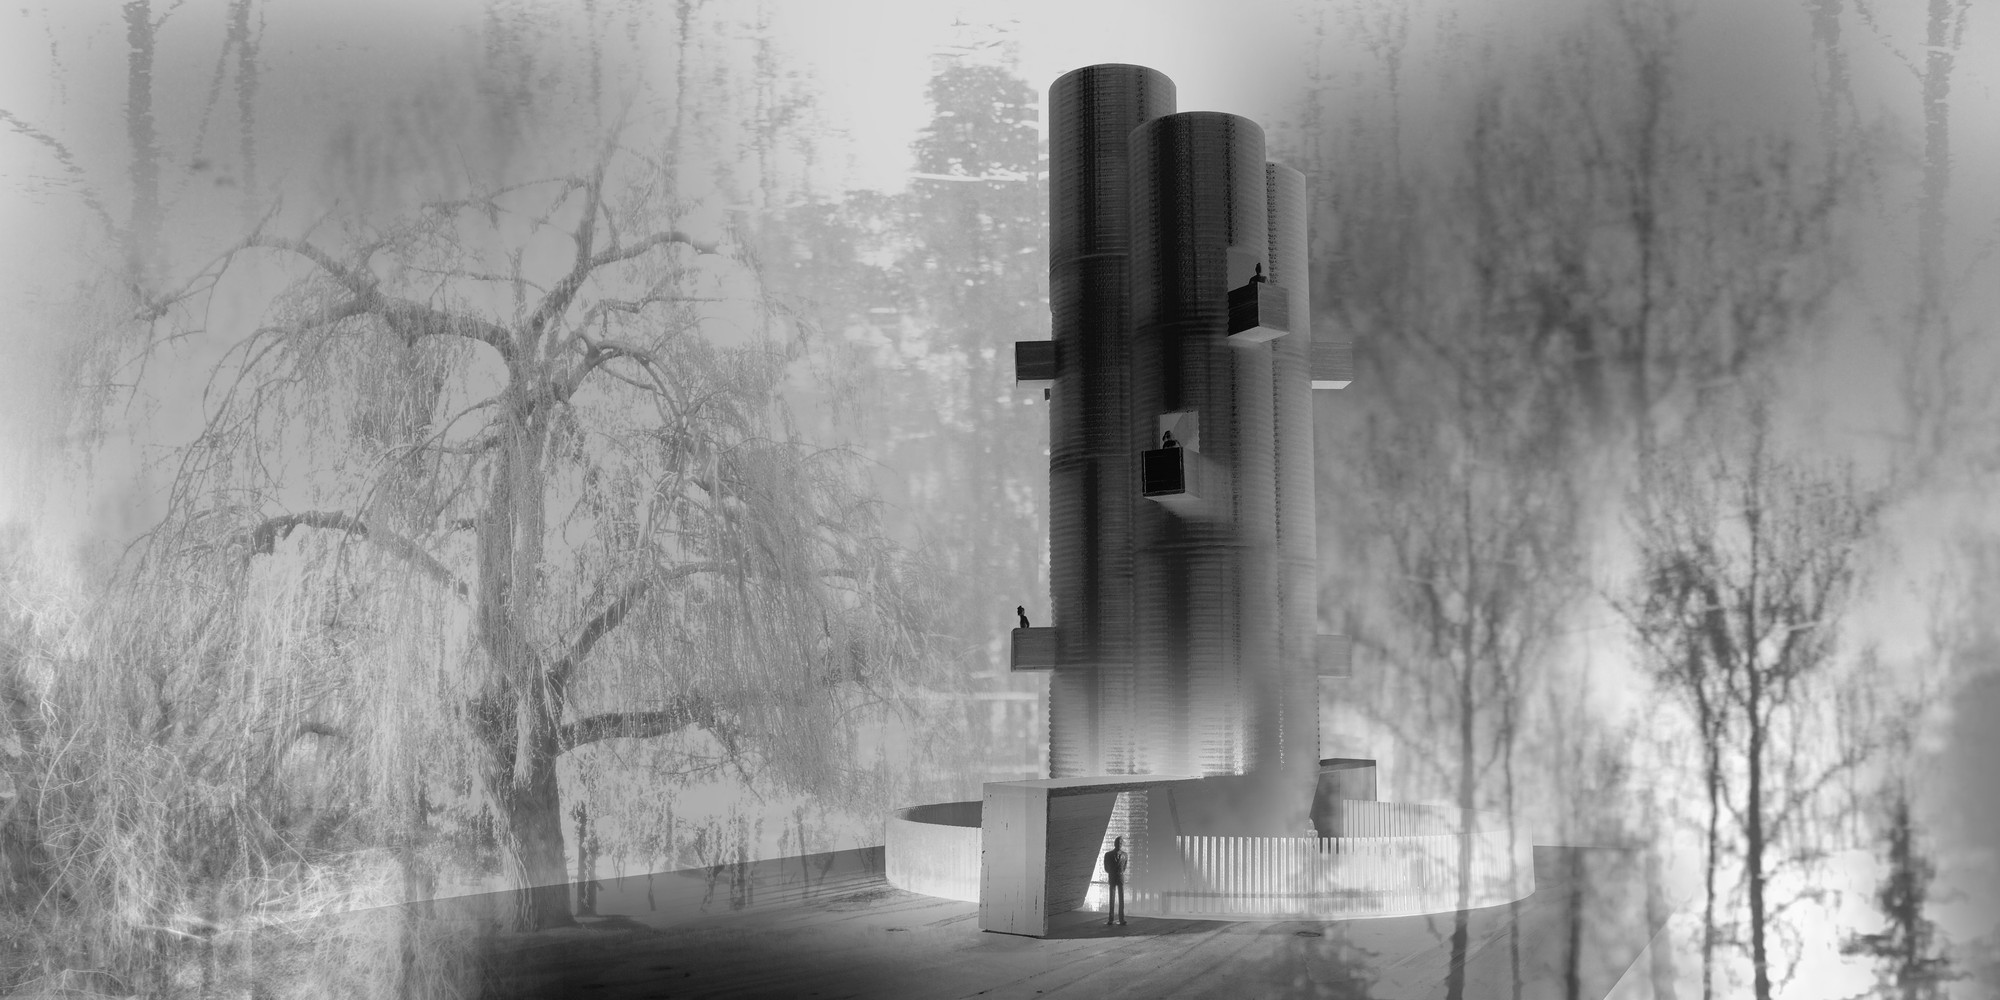 'Noise Tower', finalista en YAP_Constructo 2014 / Santiago, Chile, Courtesy of Alfredo Thiermann y Sebastián Cruz